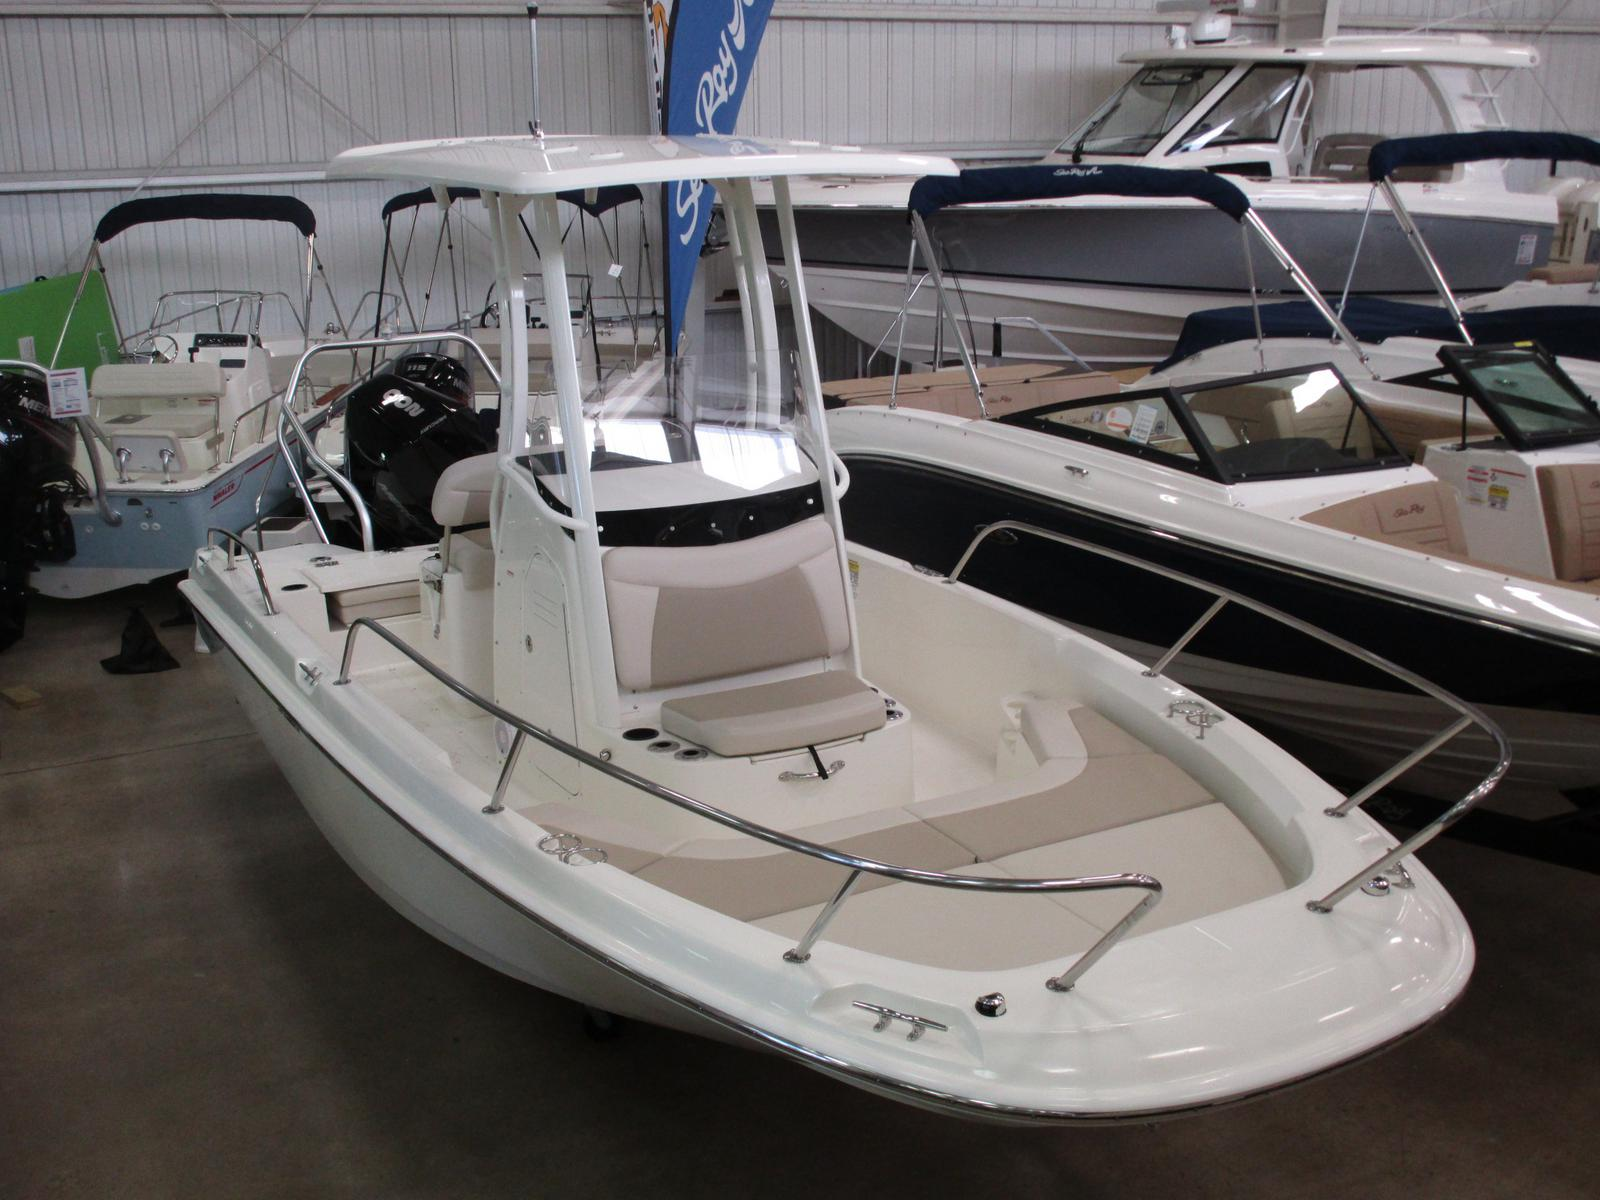 2019 Boston Whaler boat for sale, model of the boat is 210 Dauntless & Image # 1 of 7